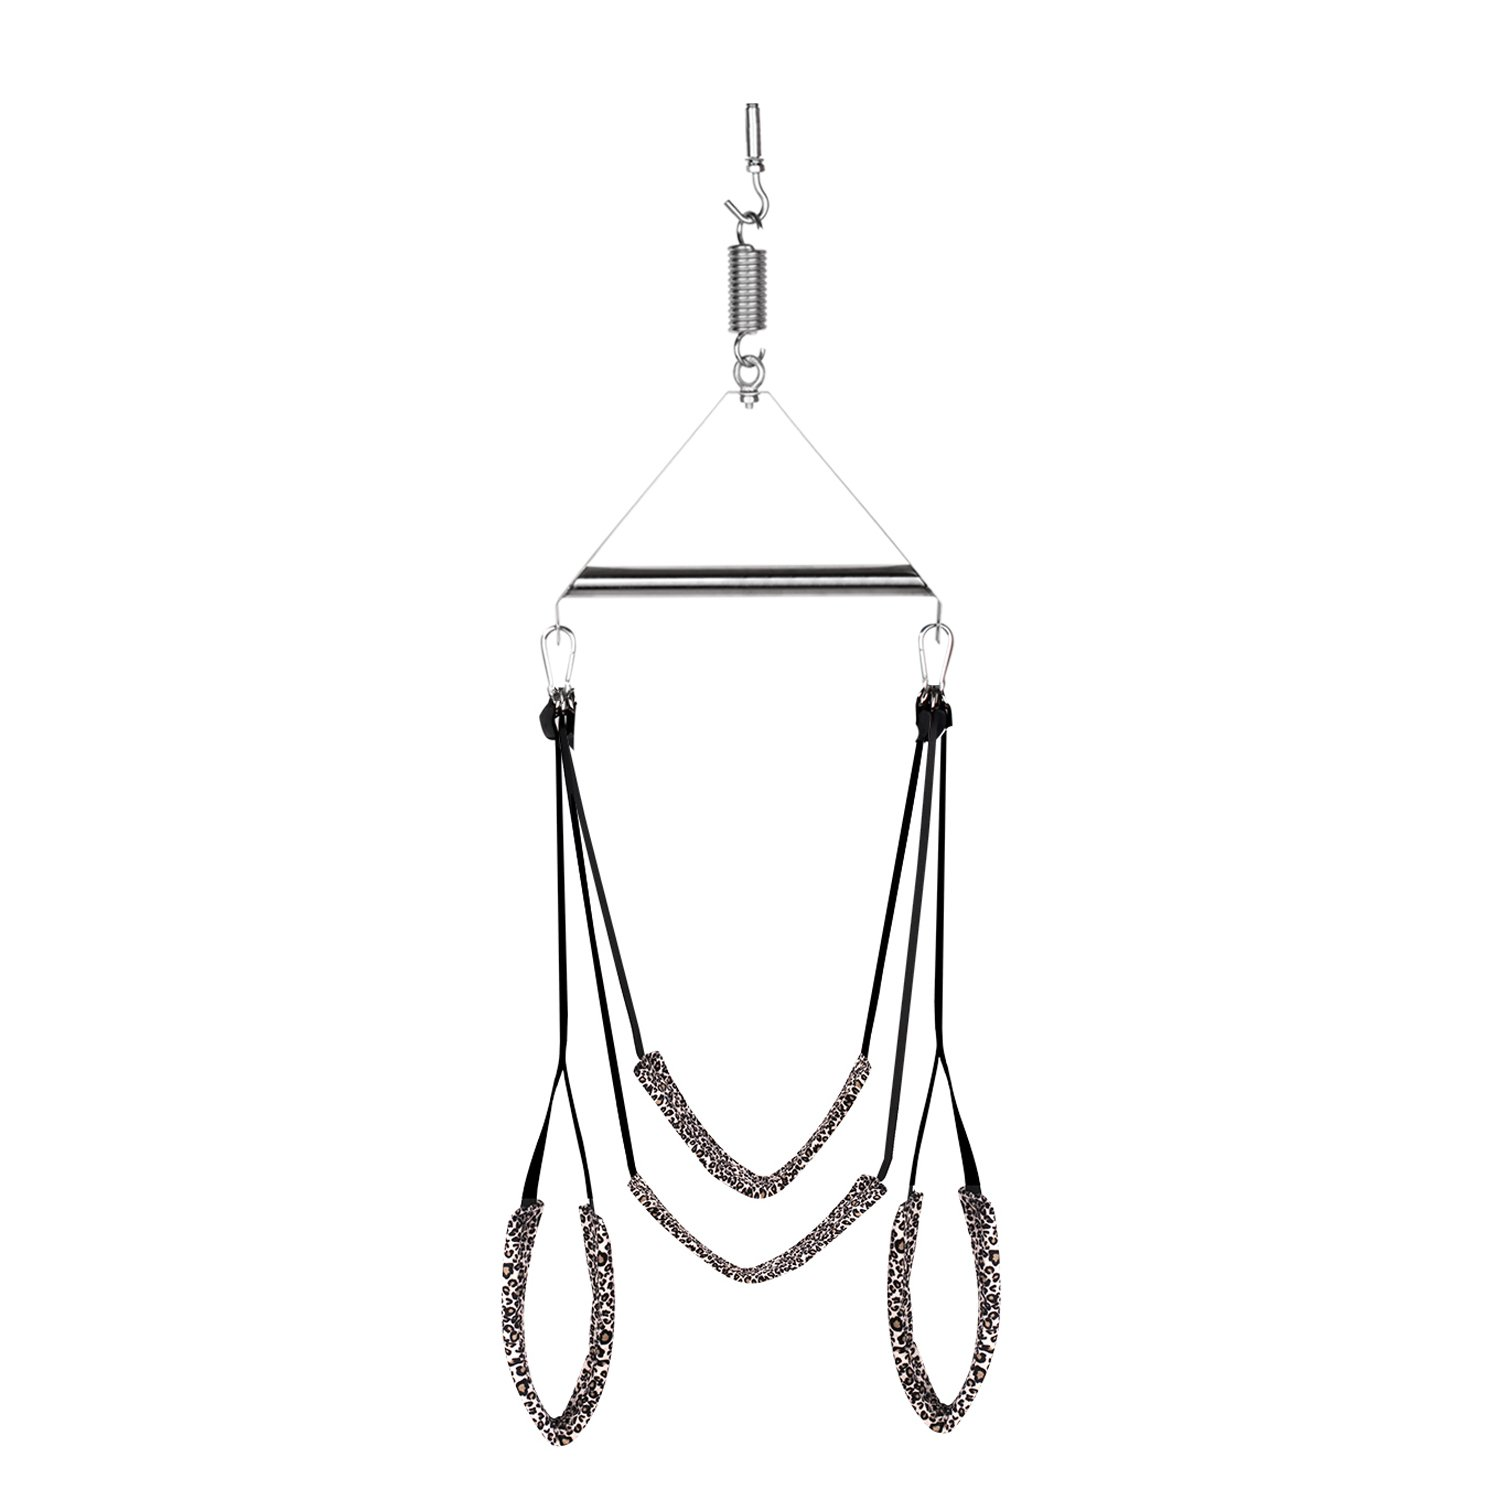 Vmitor Luxury Heavy Duty Indoor Swing with Steel Triangle Frame and Spring for Fetish Sex Bondage Unisex,Super Durable and Soft